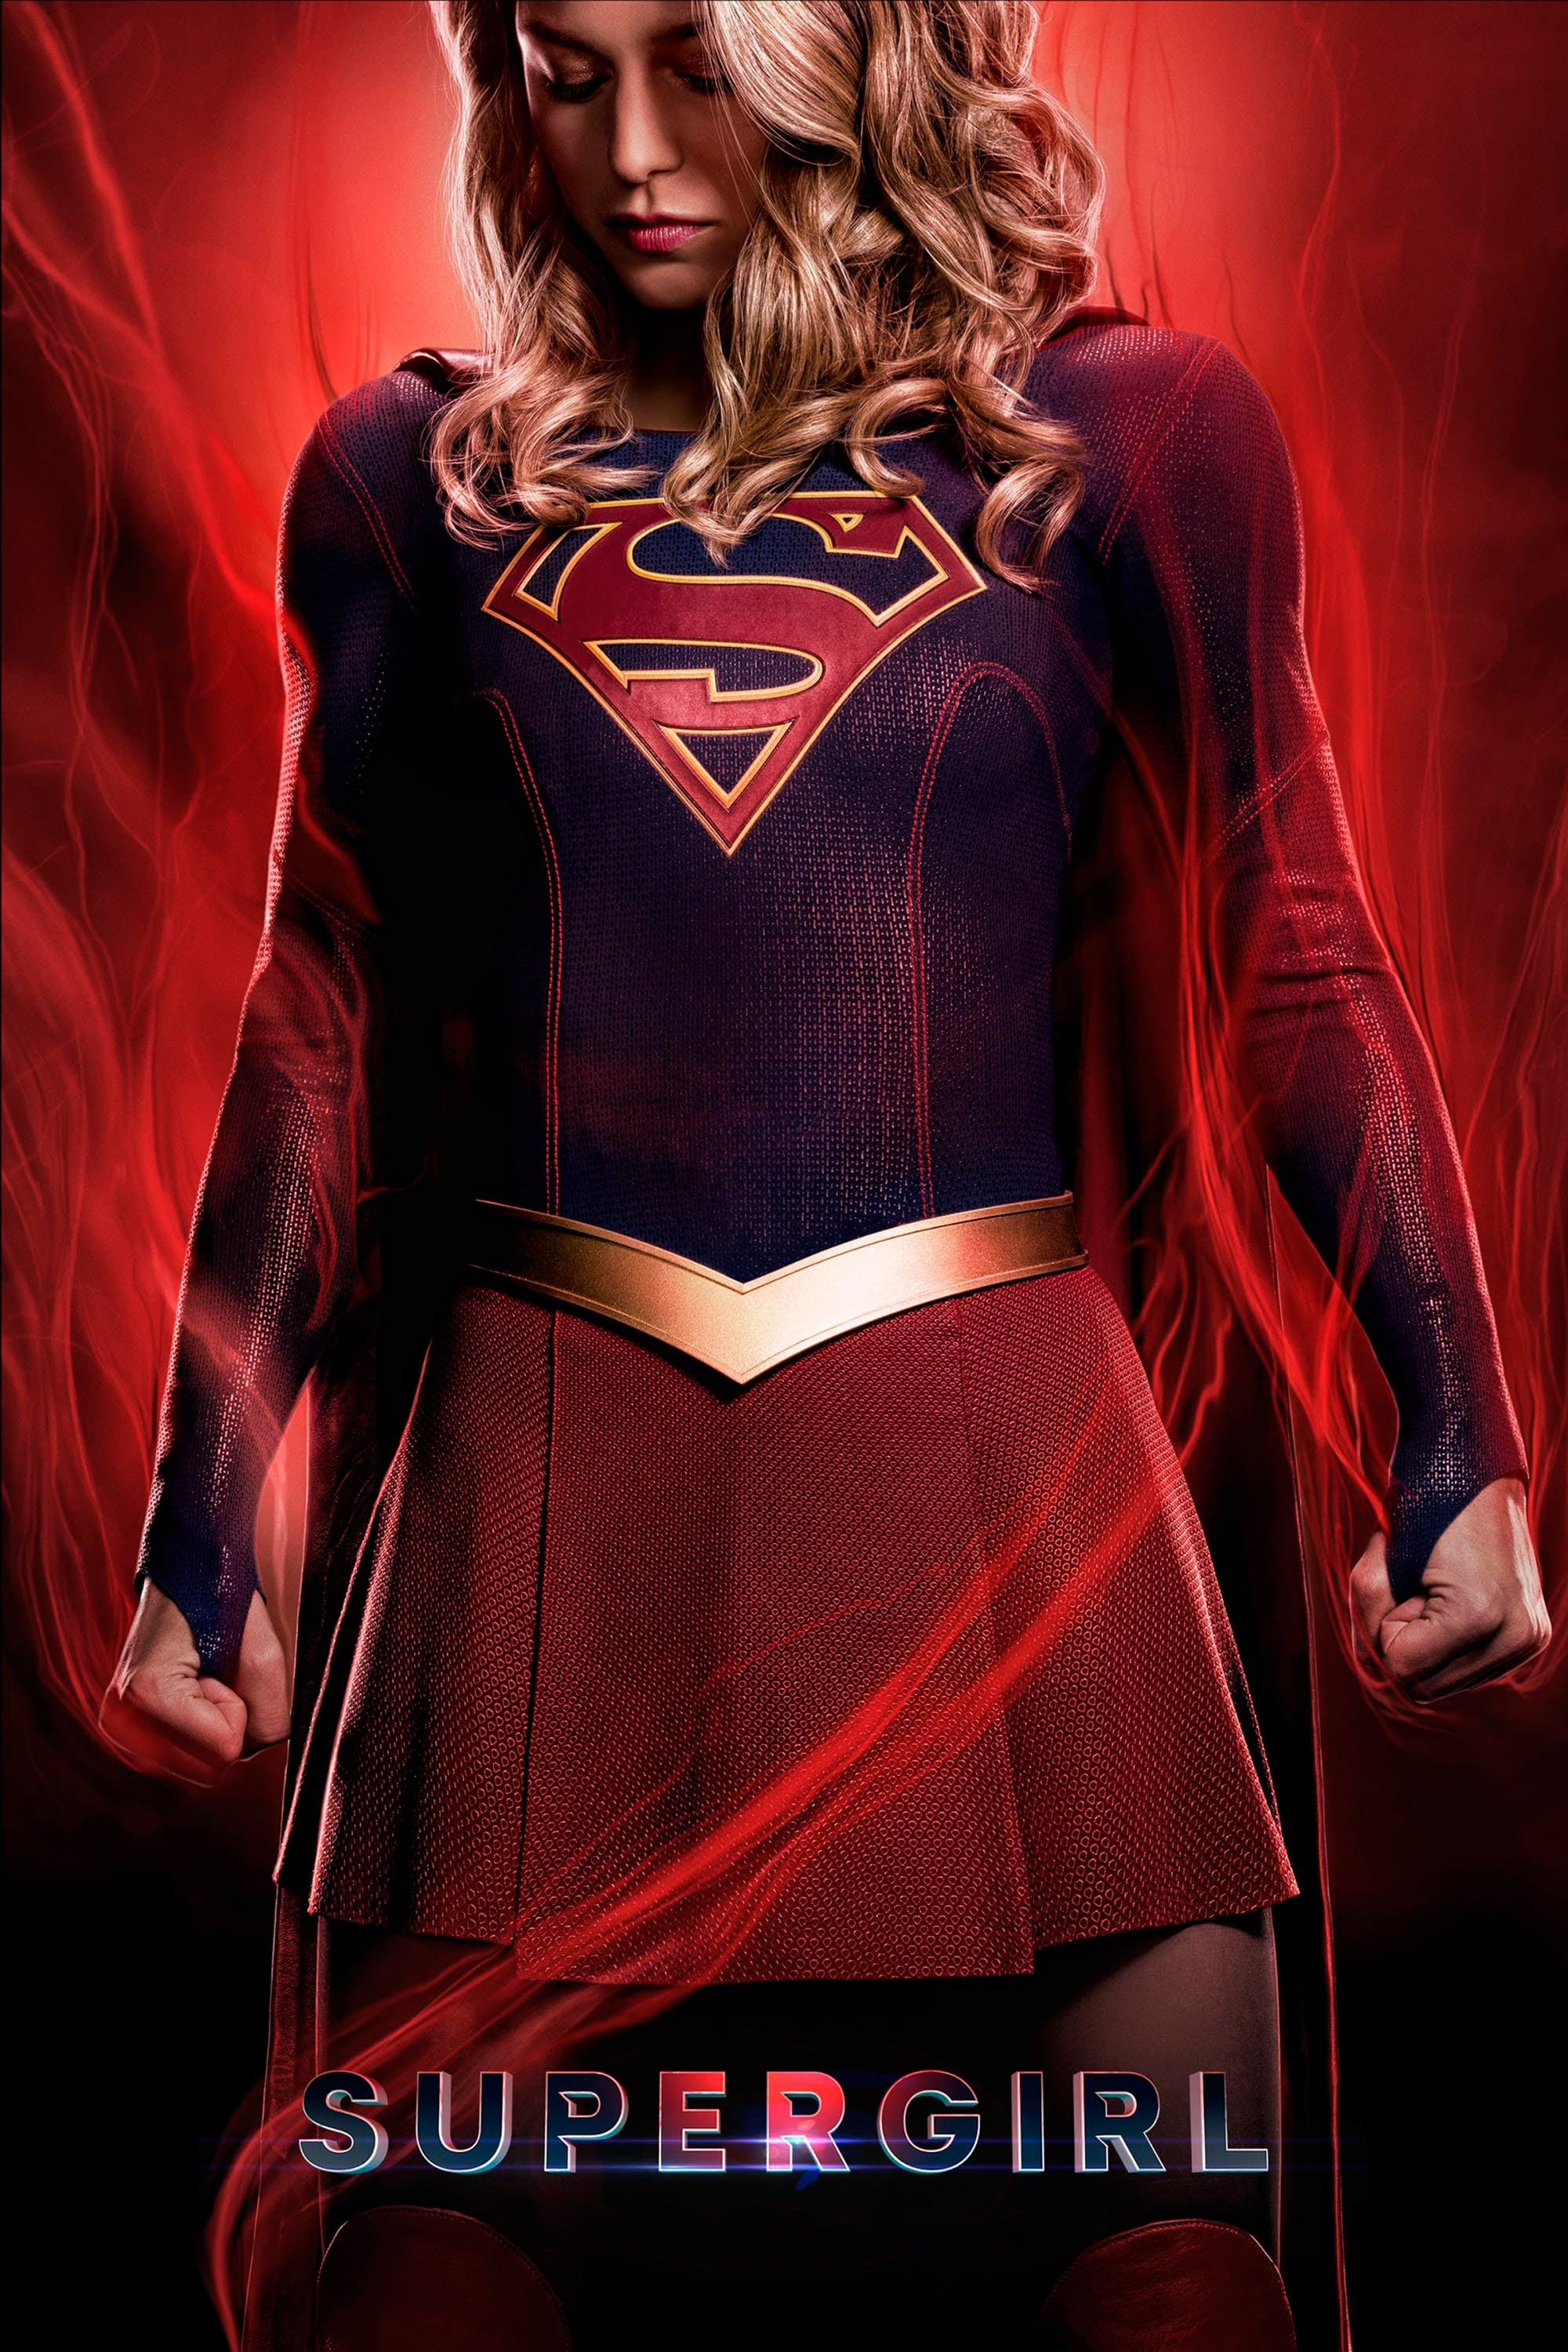 Supergirl 4ª Temporada (2018) Torrent - WEB-DL 720p e 1080p Dublado / Dual Áudio e Legendado Download